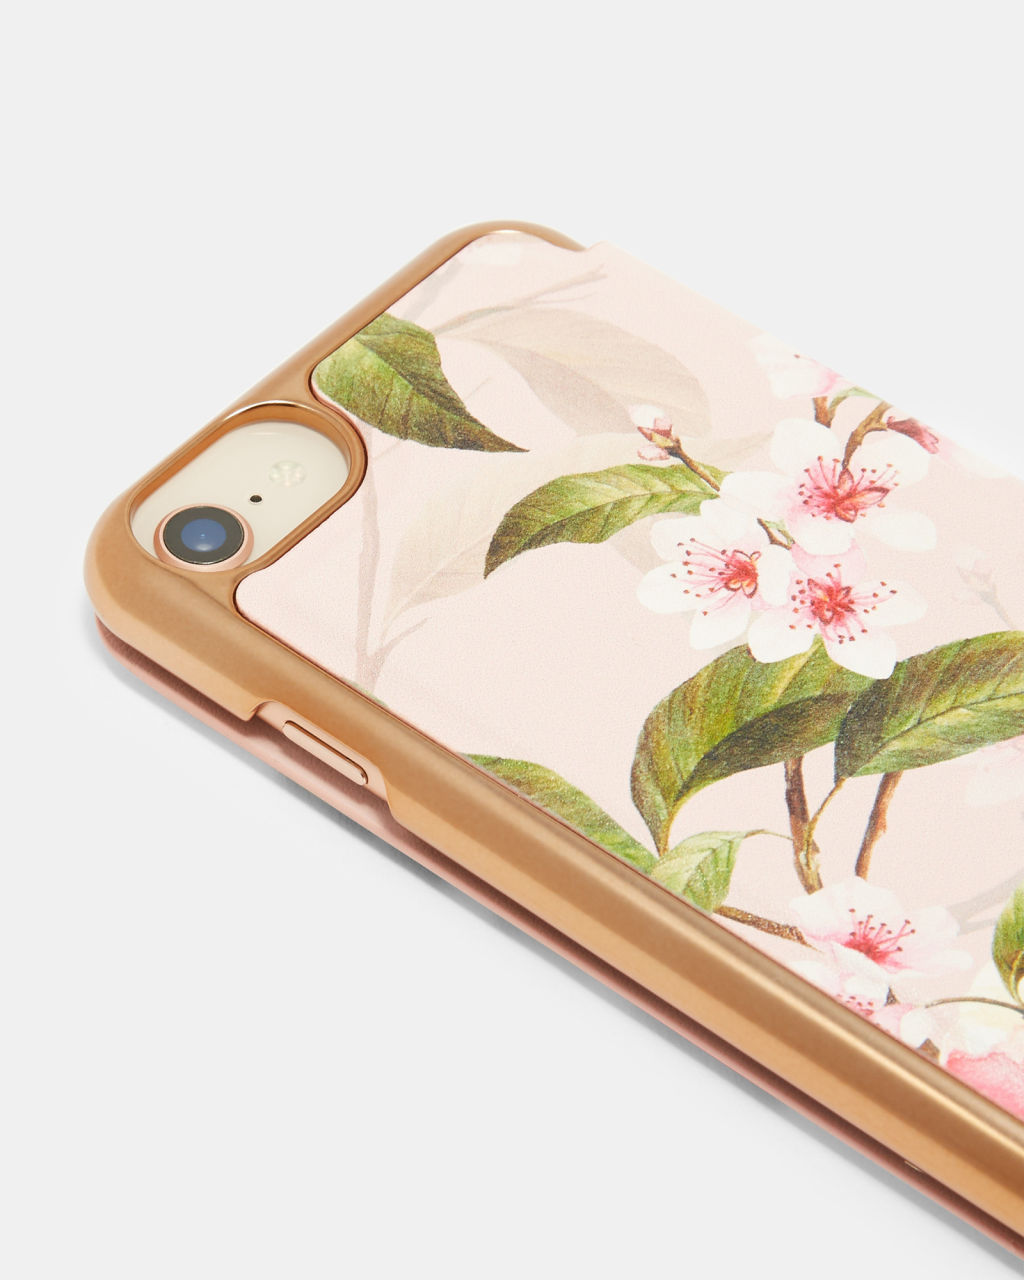 DONELLA Peach Blossom iPhone 6/6s/7/8 case